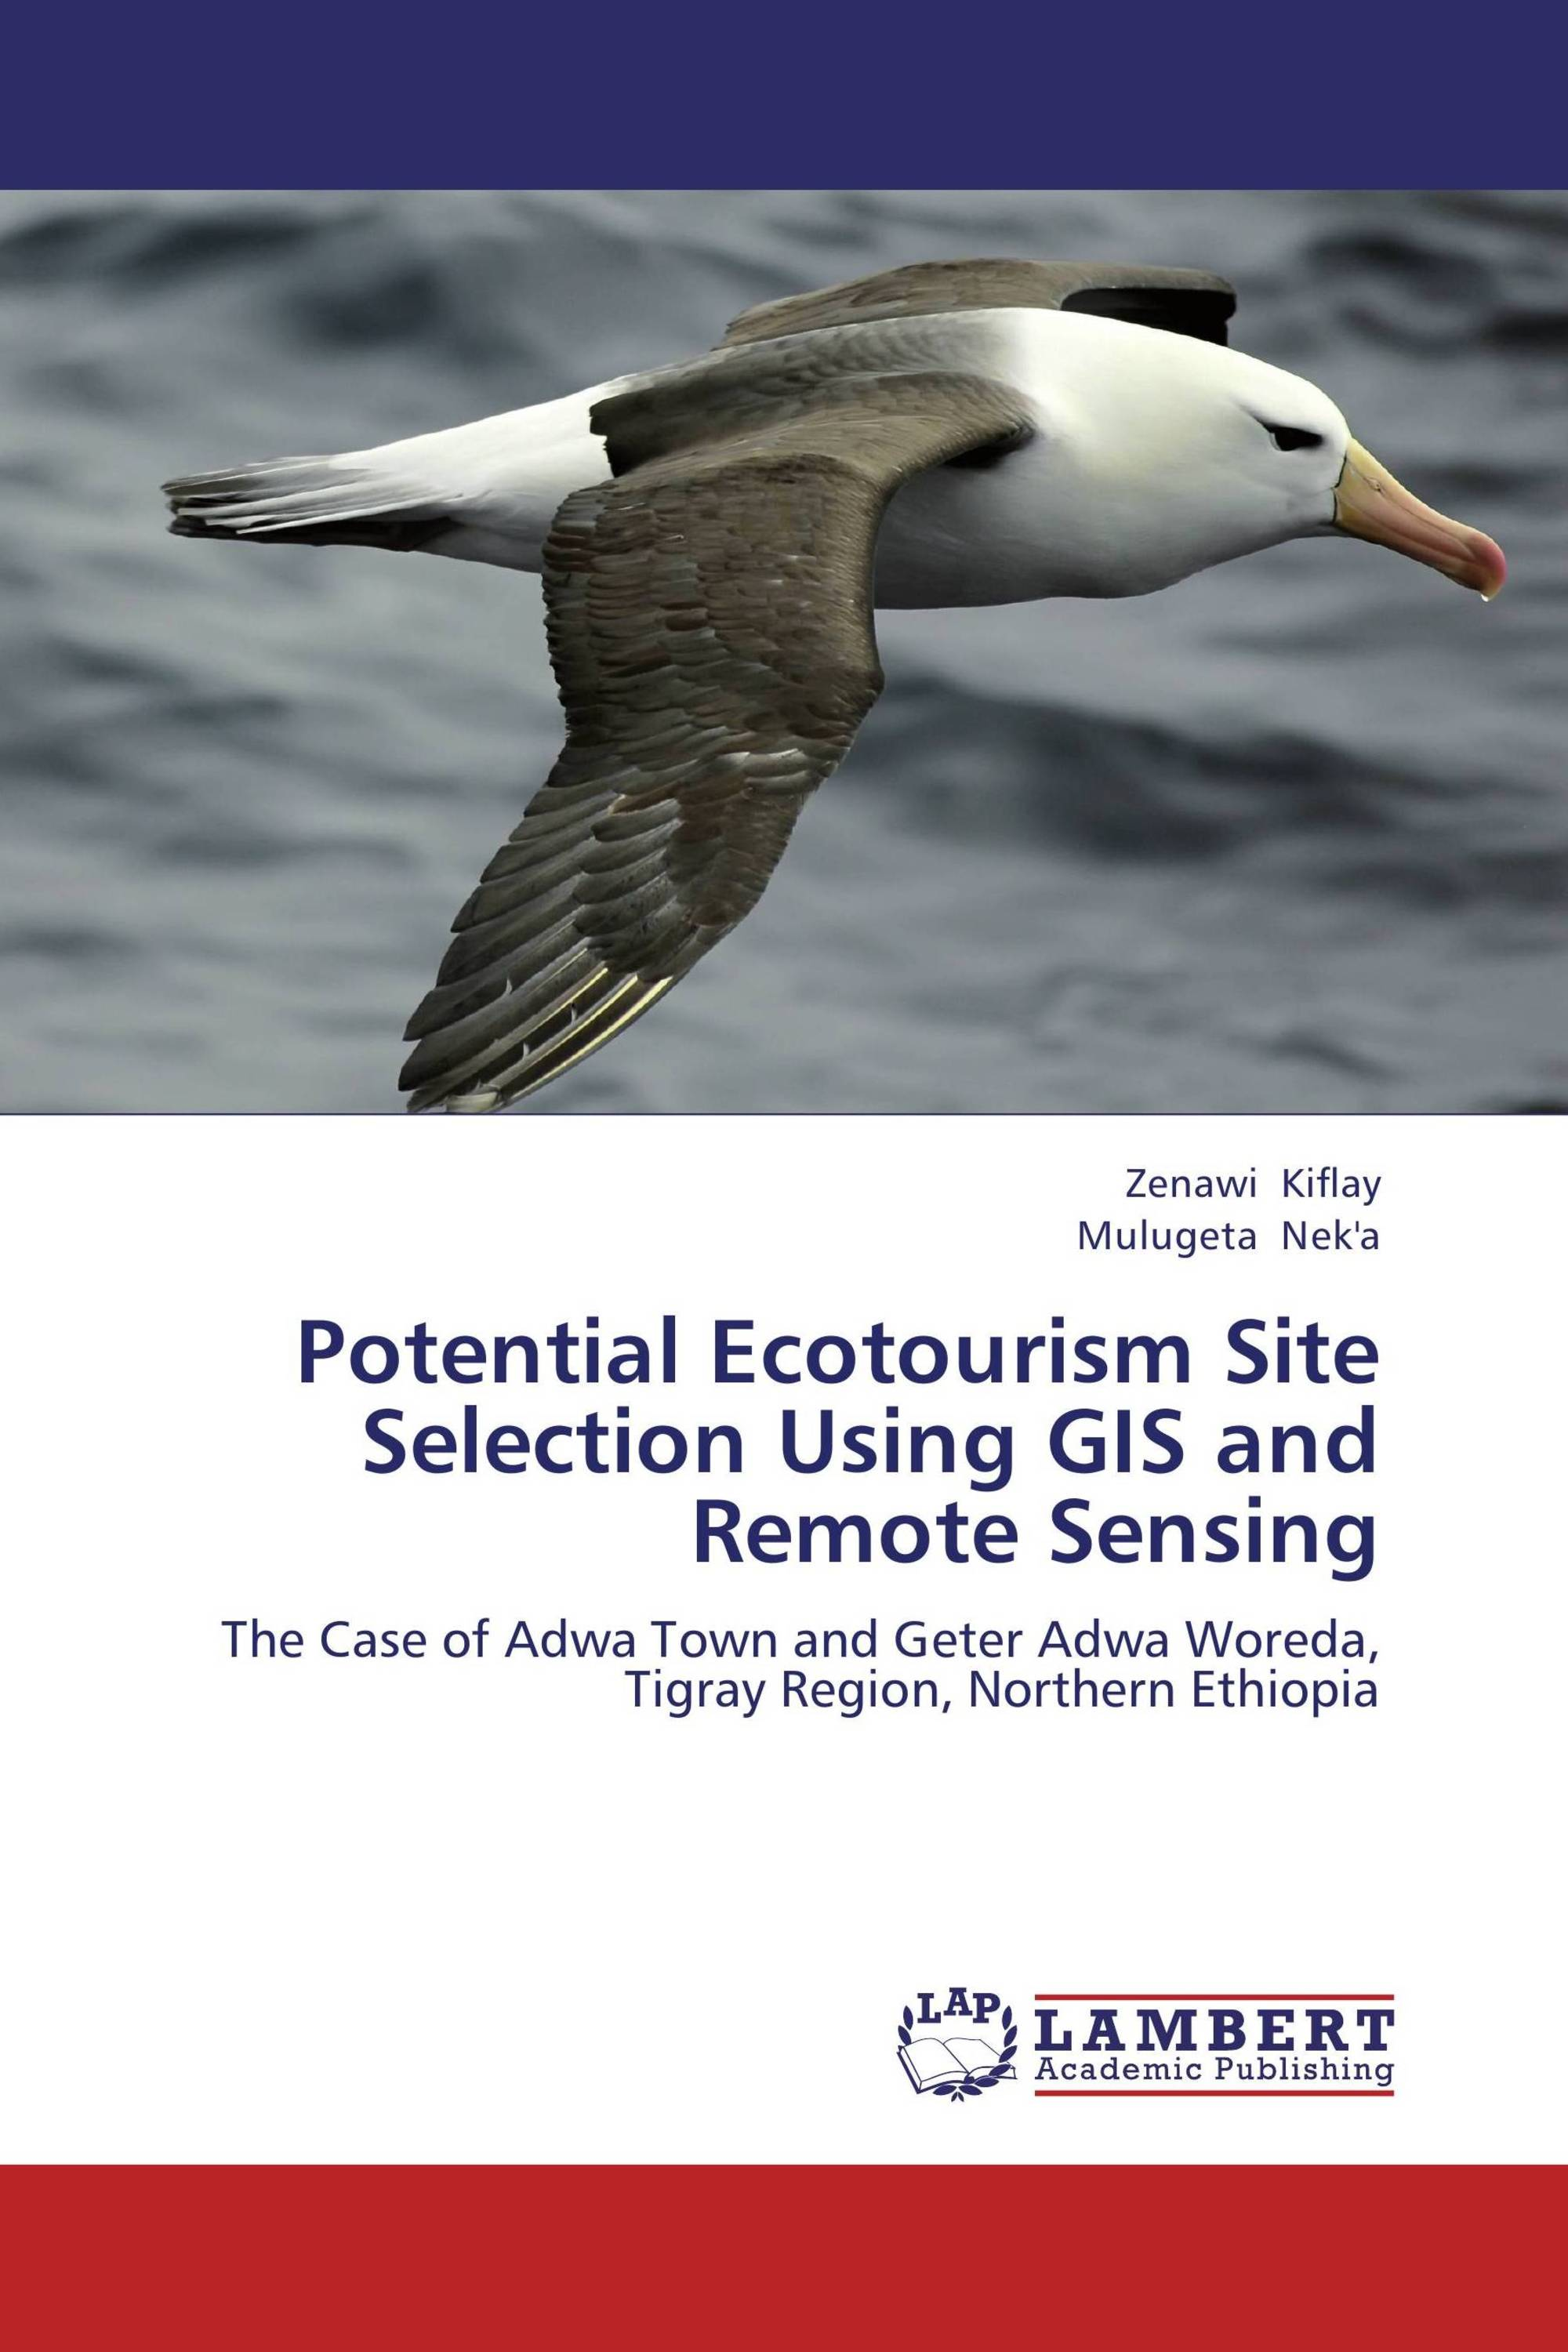 thesis on gis and remote sensing Remote sensing and gis research available through wvu's worldwide web etd archive, and its potential uses by electronic thesis and dissertation.